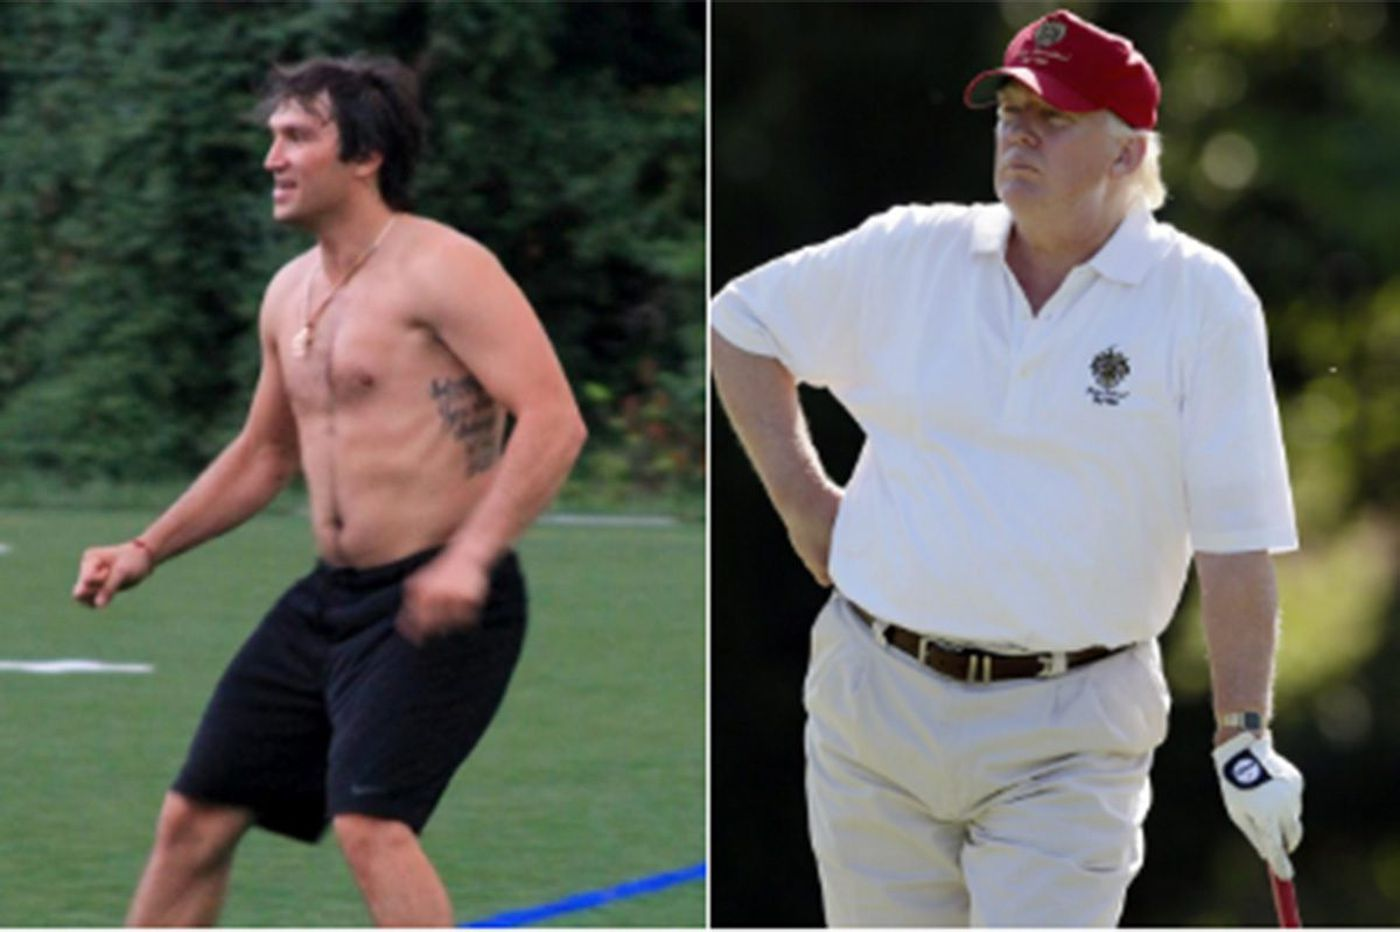 Doctor says Trump is 6-3, 239 pounds, and the Internet has so many athlete comparisons